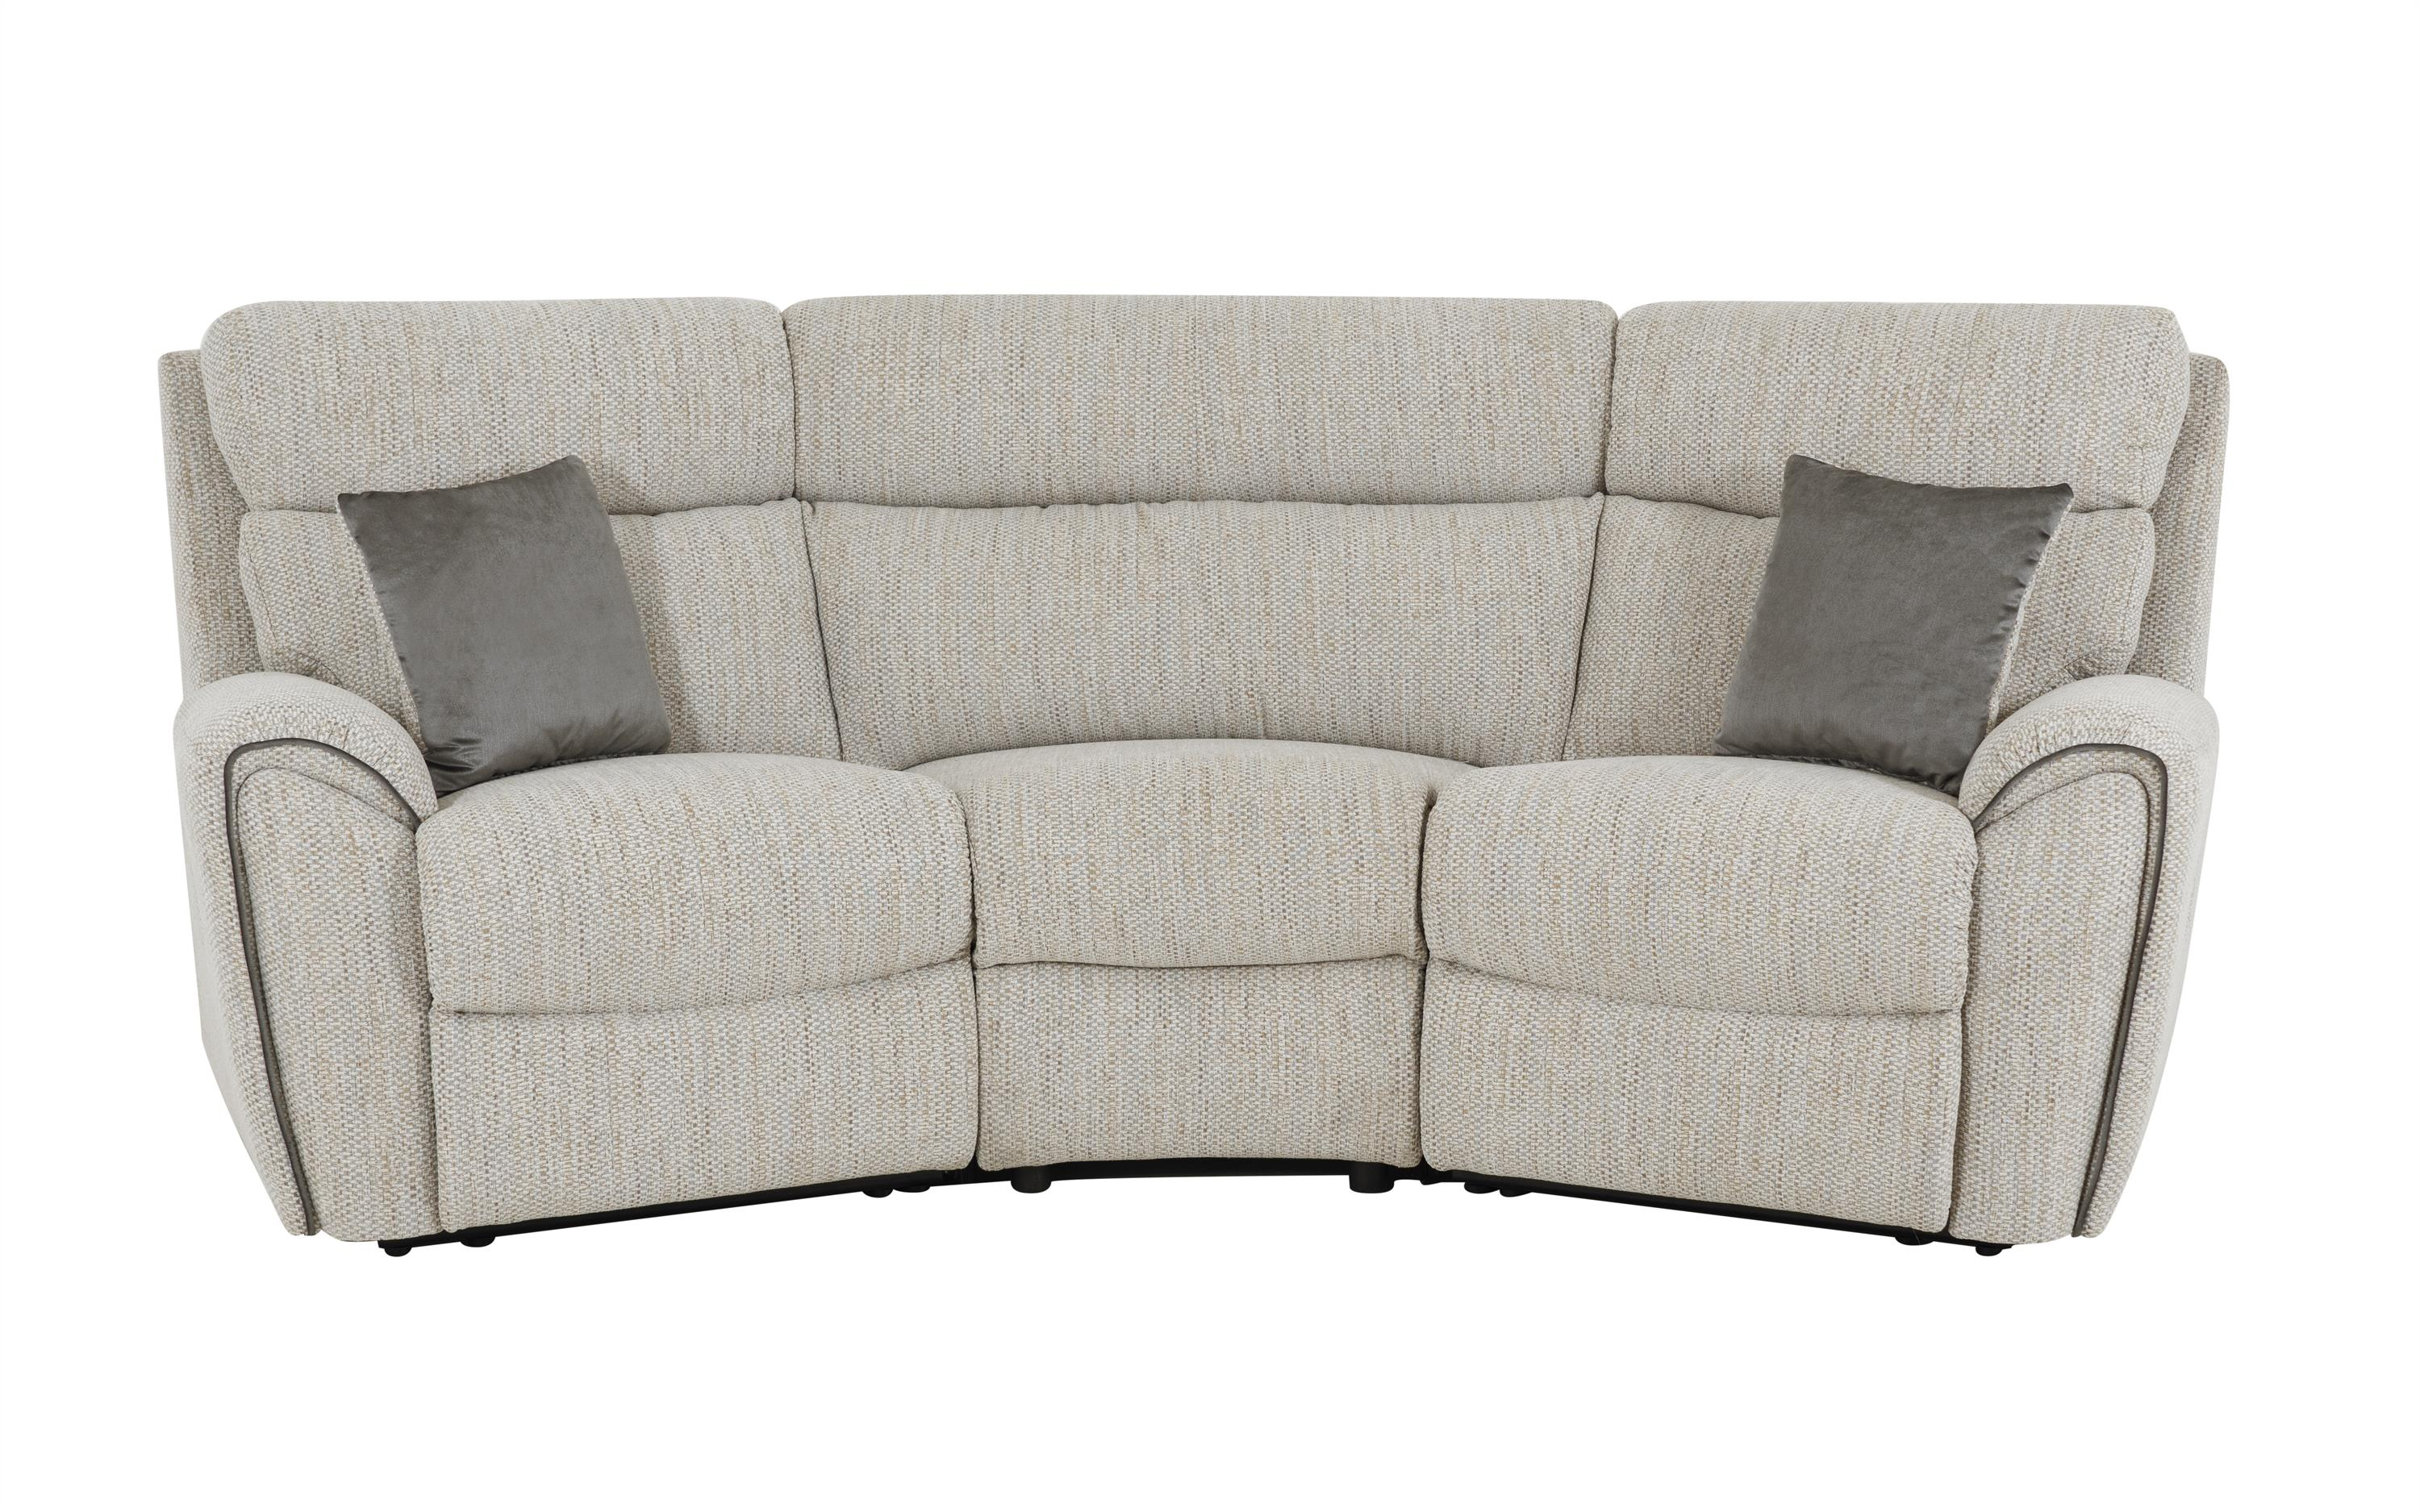 La-Z-Boy Pittsburgh 3 Seater Compact Curved Static Sofa, , large